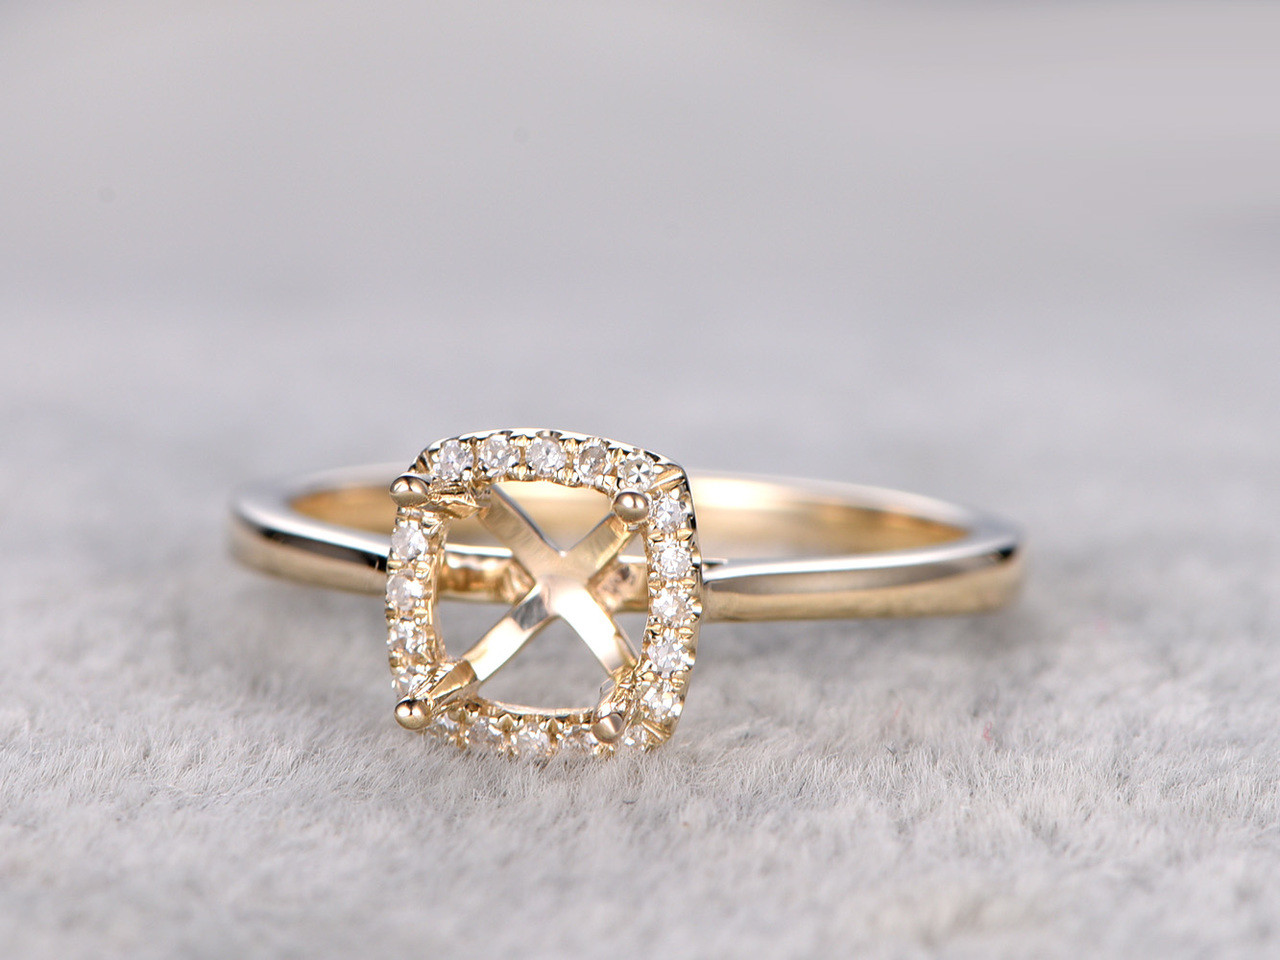 Square Cushion Cut Diamond Engagement Ring